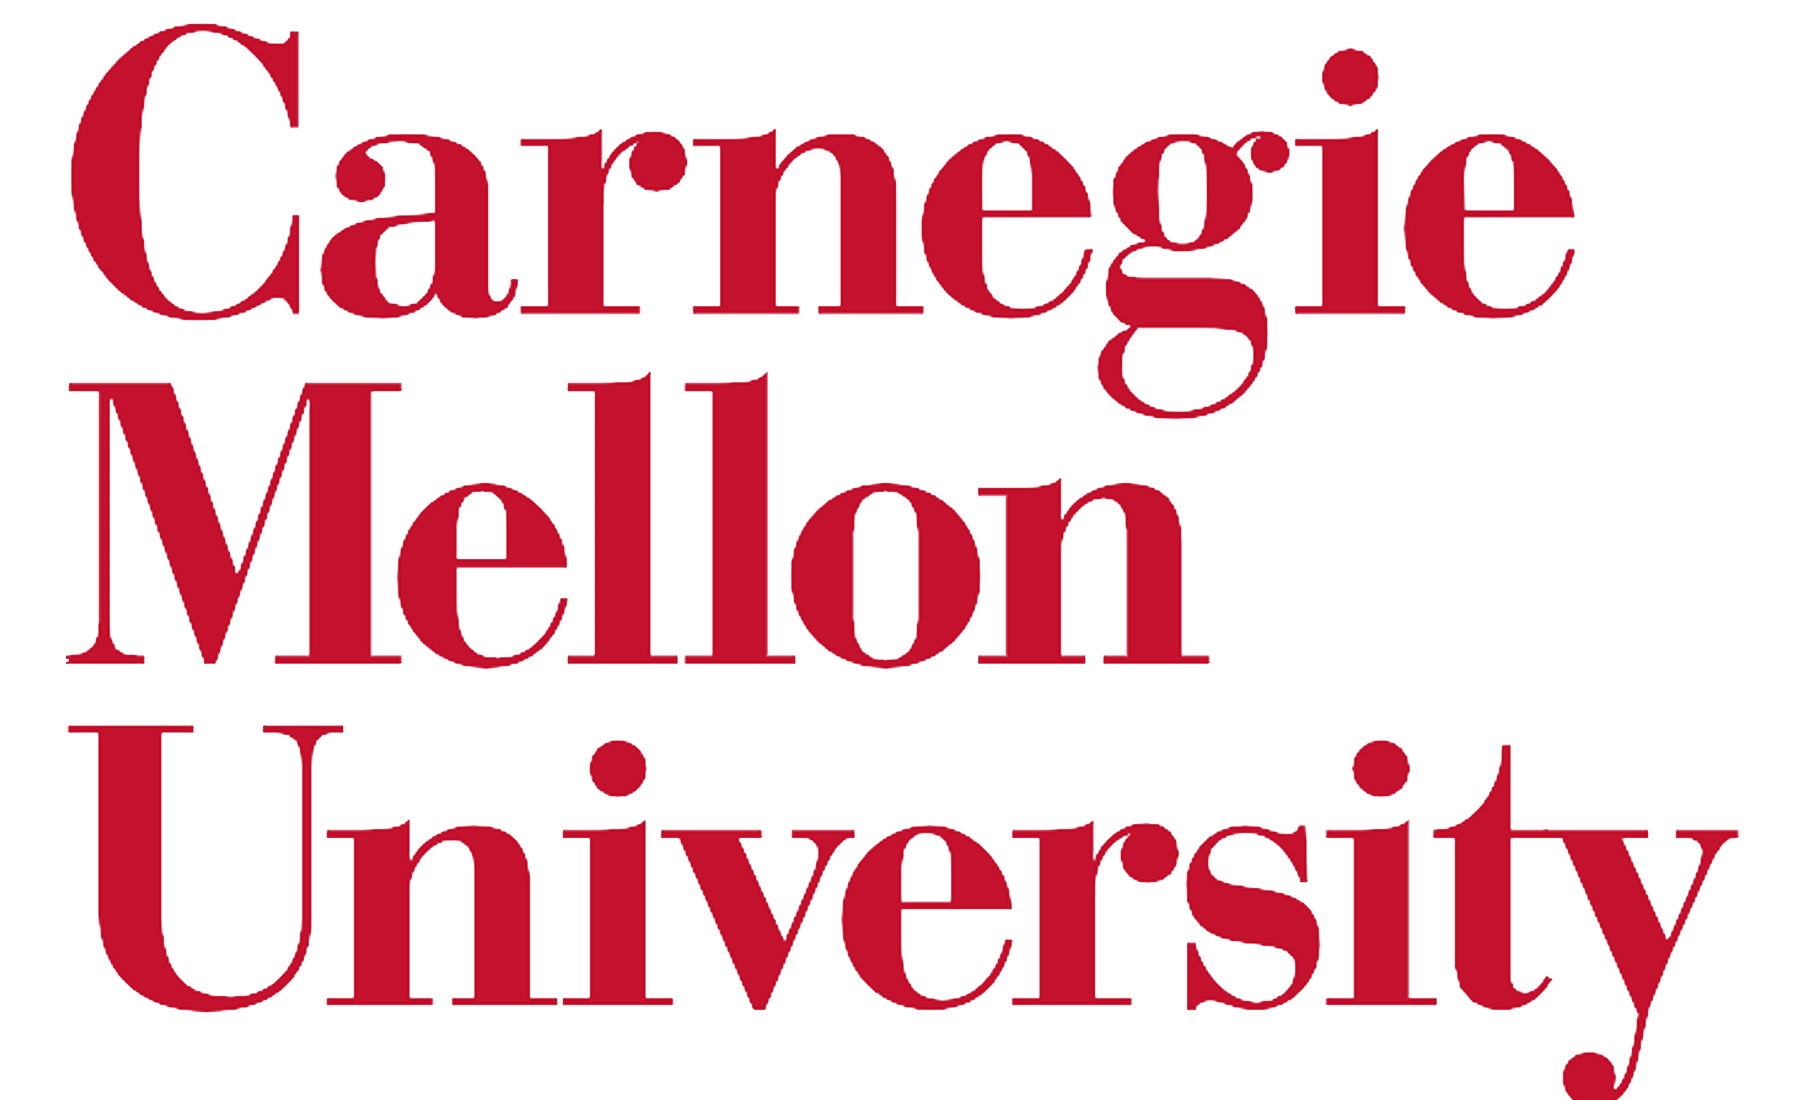 University of Carnegie Mellon